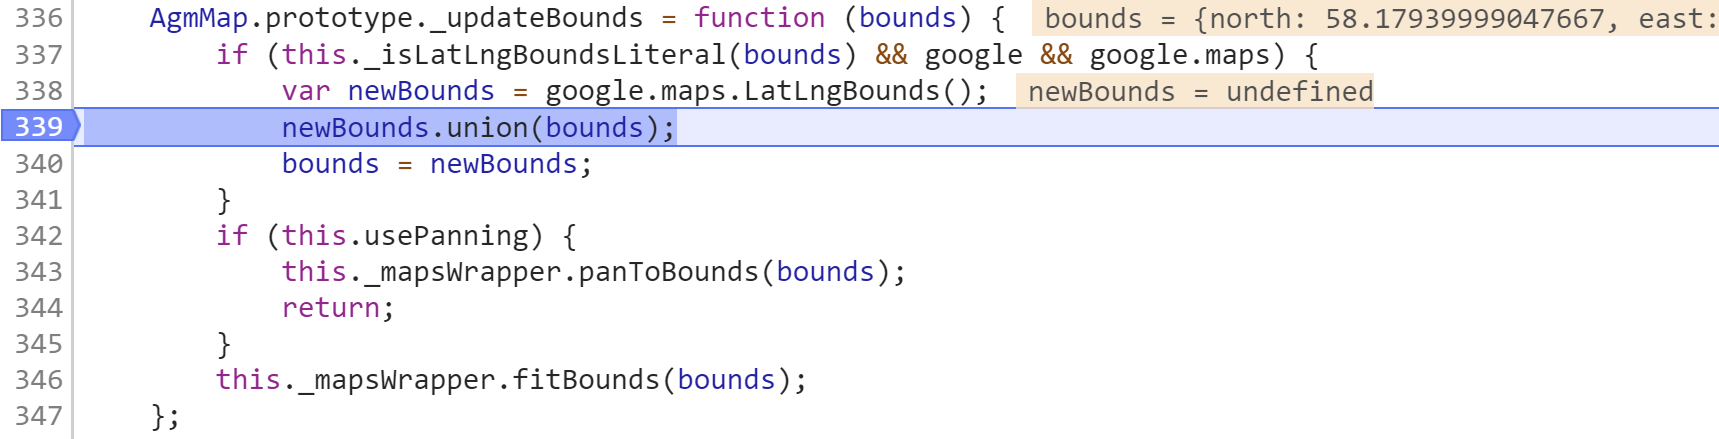 Reference error when using fitBounds with